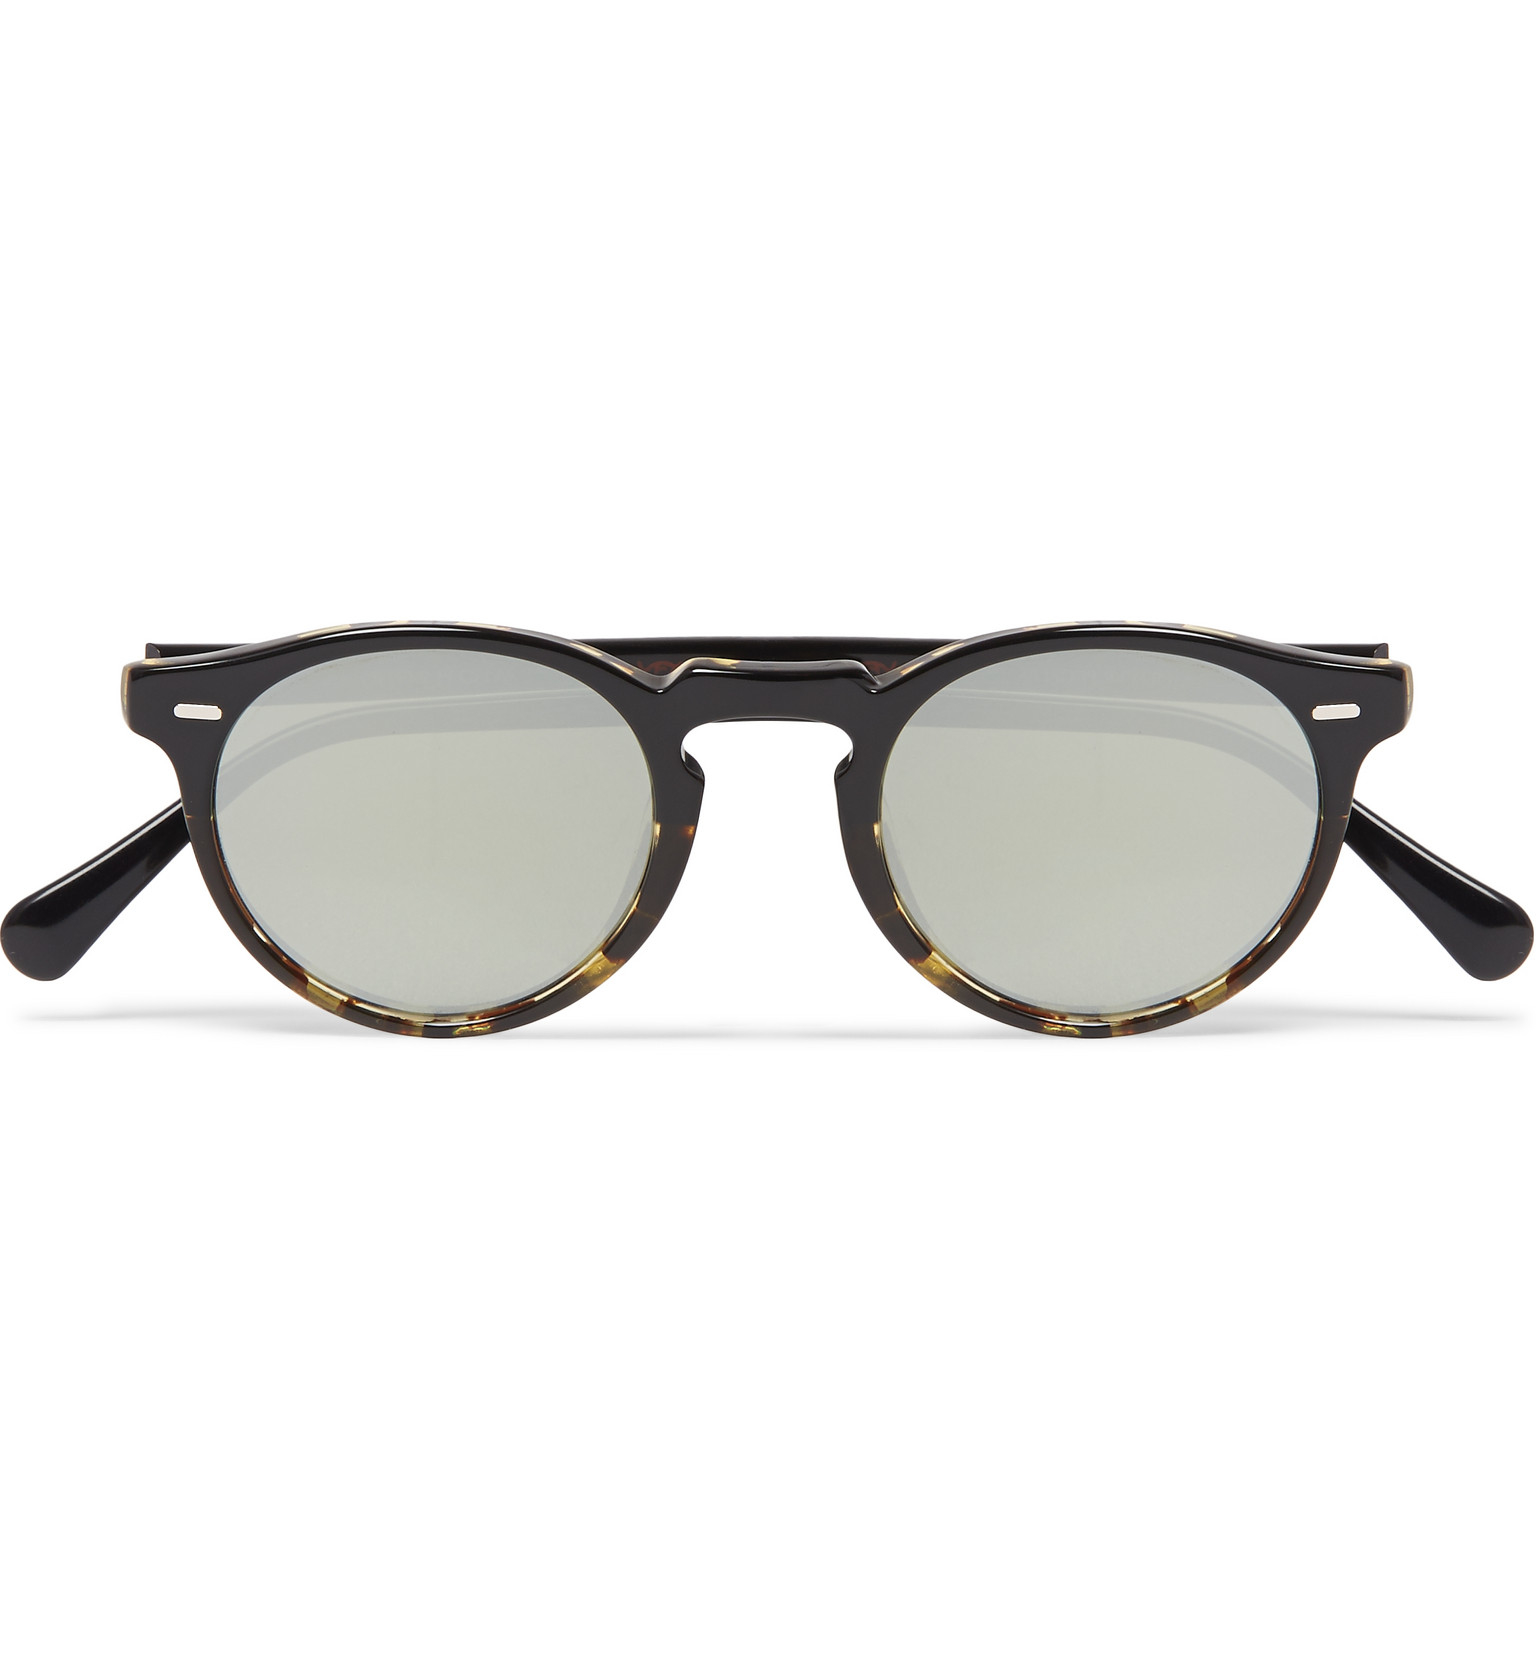 bdeae1113b Oliver Peoples Gregory Peck Round-frame Acetate Sunglasses in Black ...